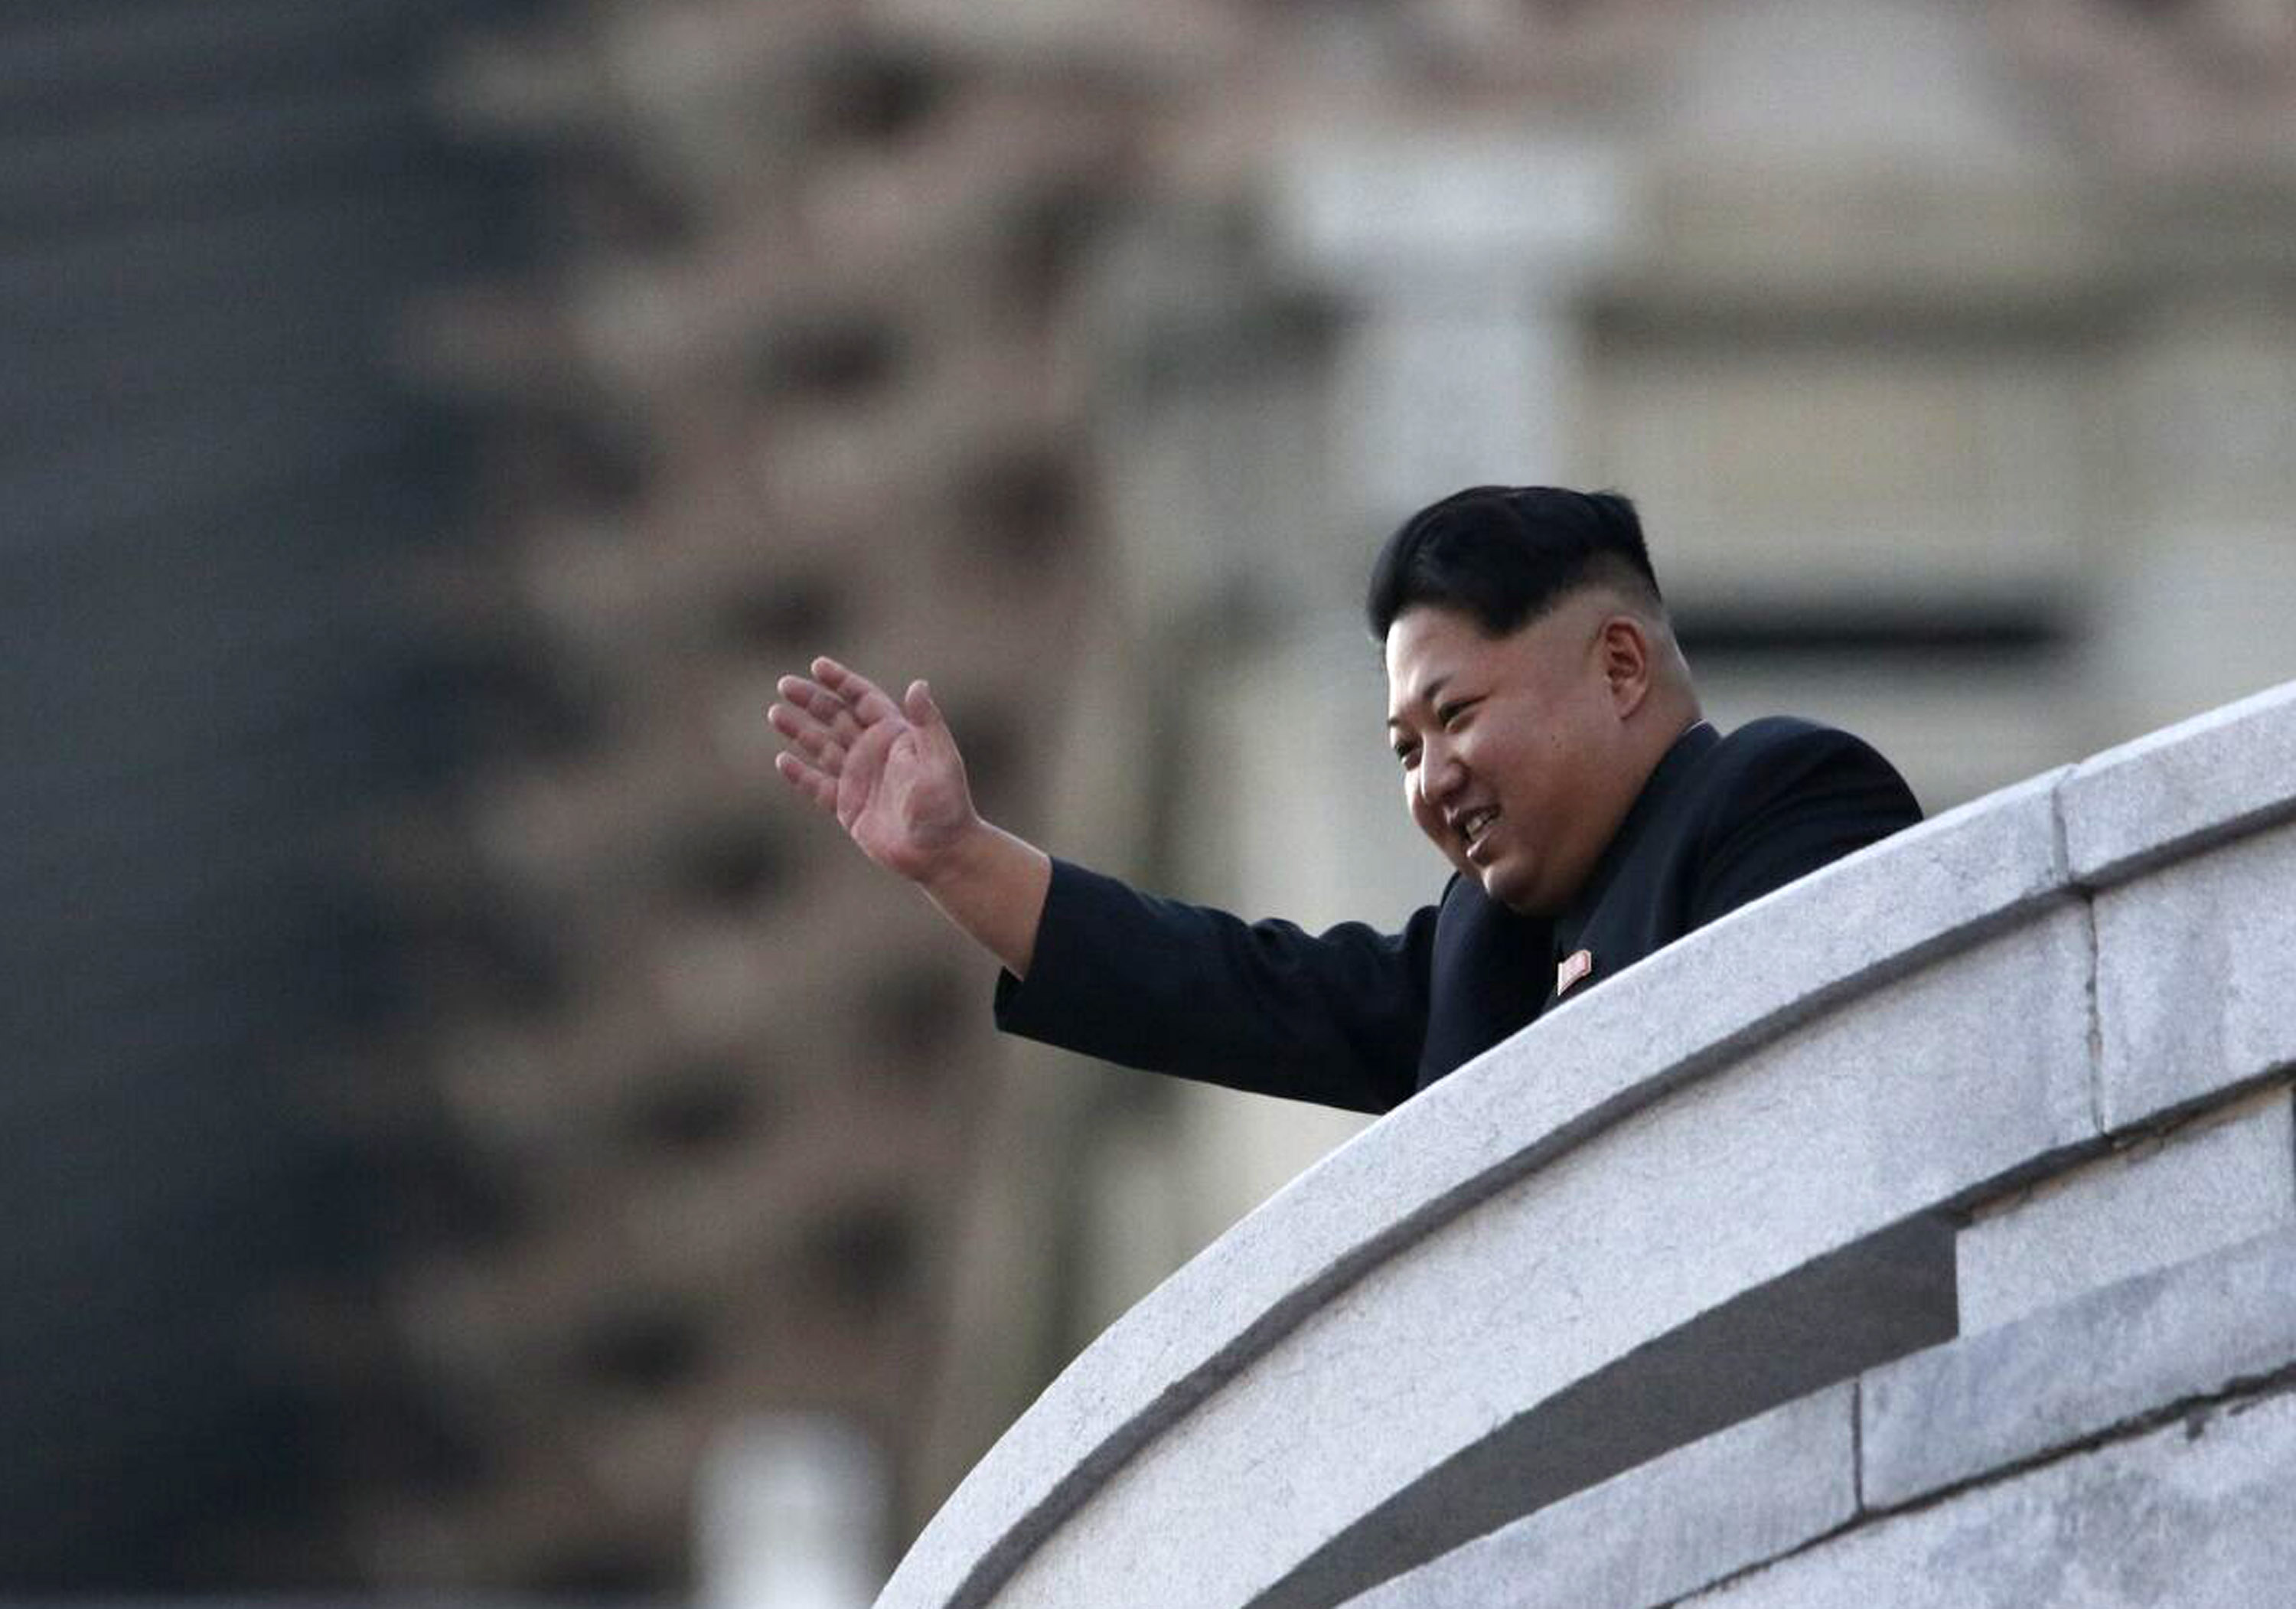 PYONGYANG, NORTH KOREA - OCTOBER 10: (CHINA OUT) North Korea's leader Kim Jong-Un waves from a balcony towards participants of a mass military parade at Kim Il-Sung square to mark the 70th anniversary of its ruling Worker's Party of Korea on October 10, 2015 in Pyongyang, North Korea.  (Photo by ChinaFotoPress/ChinaFotoPress via Getty Images)